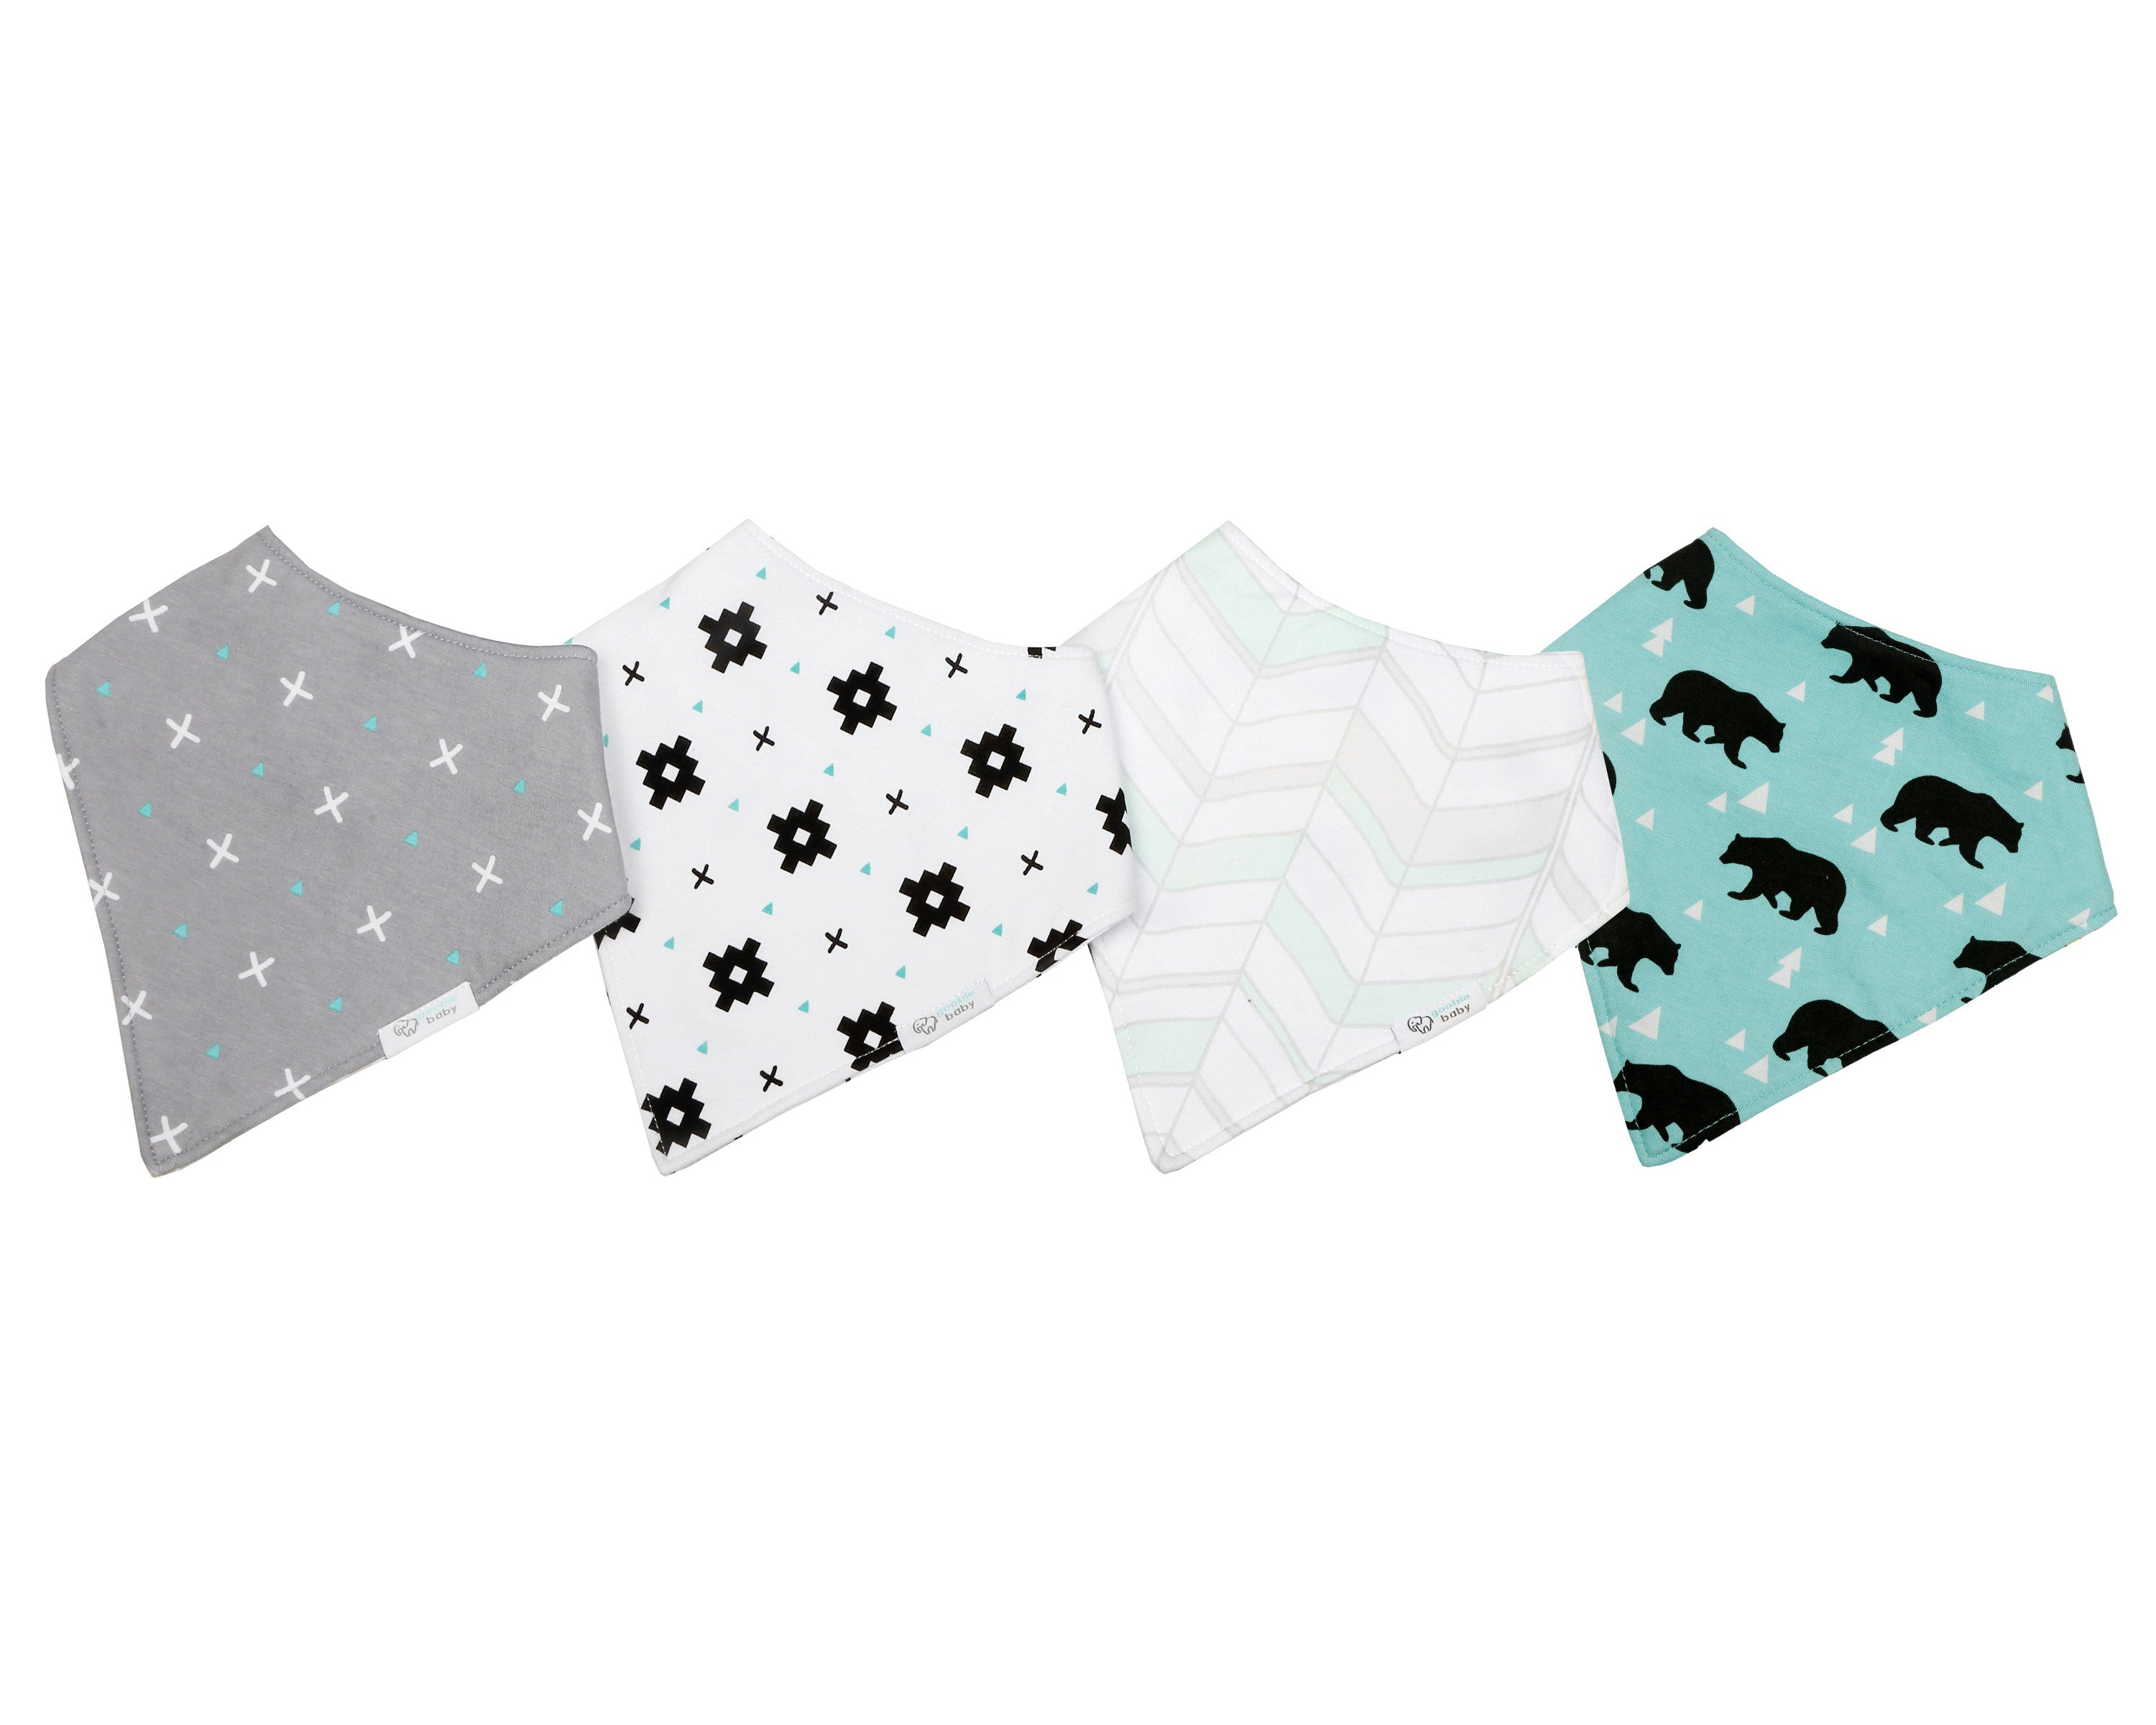 Reversible & Waterproof Cotton Baby Bandana Drool Bibs - Teal/Grey Bears